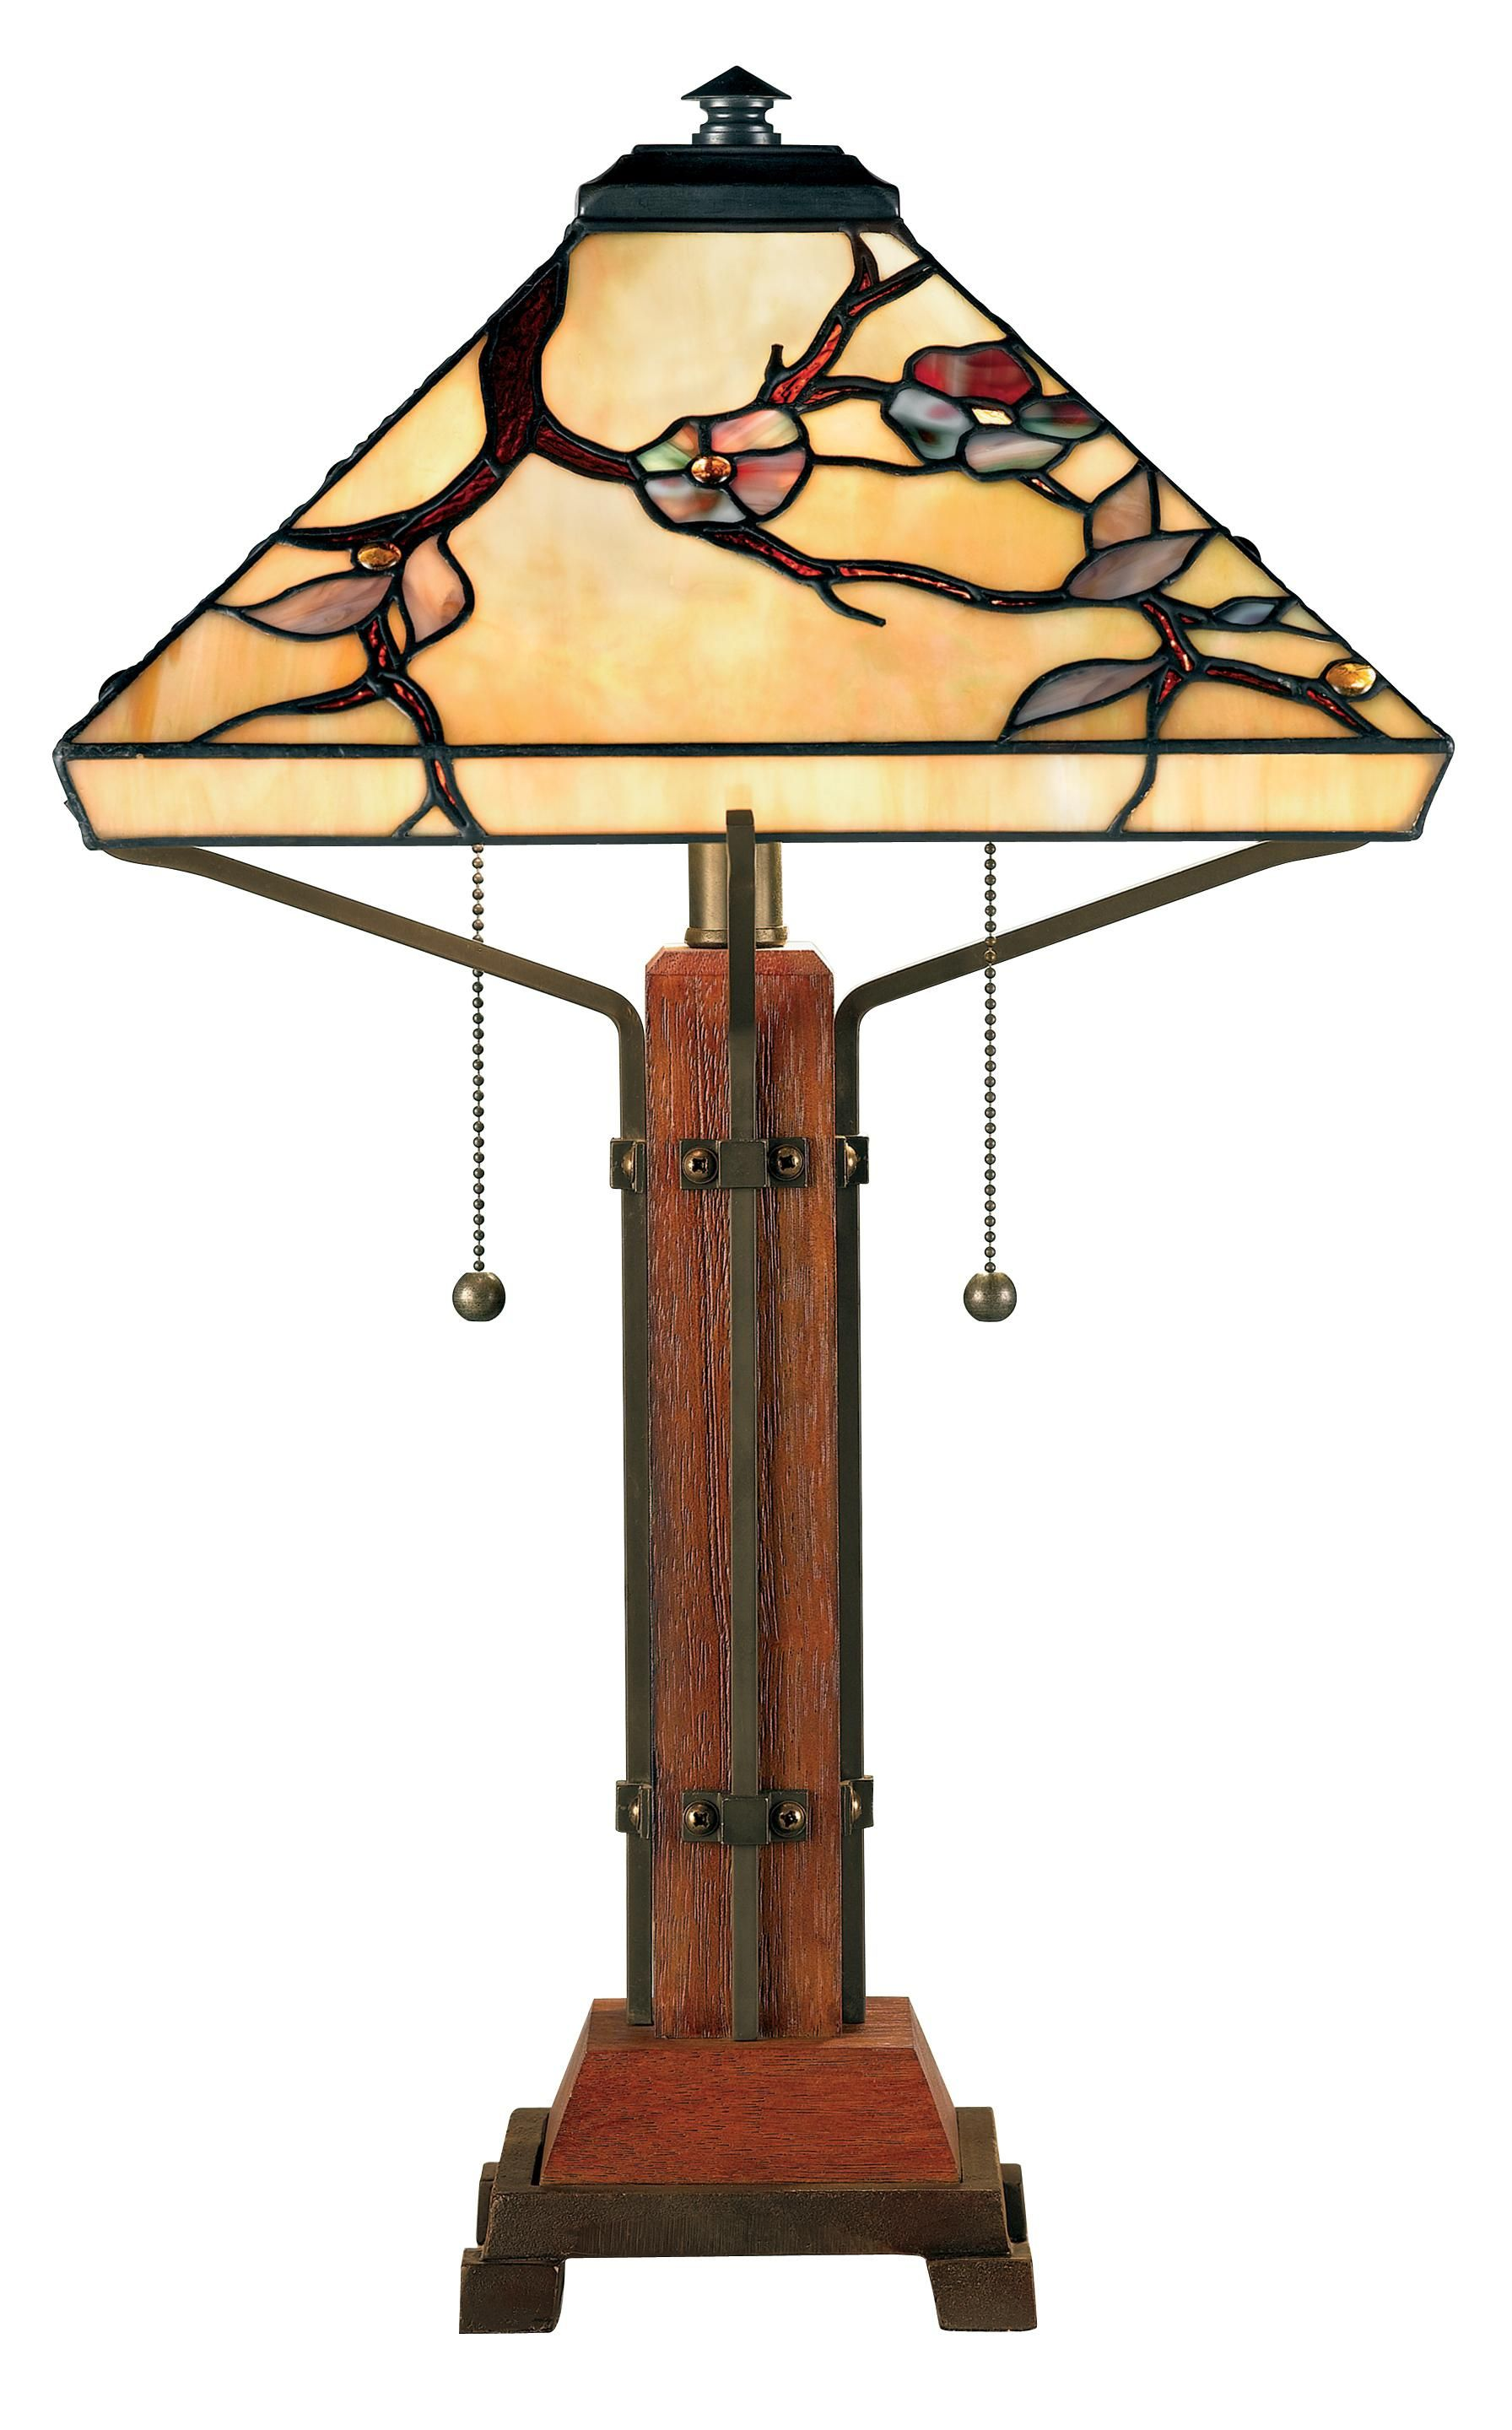 table tiffany item art cfm bronze image quoizel inch finish and glass style lamps lamp capitol magnifying mason vintage high in lighting shown